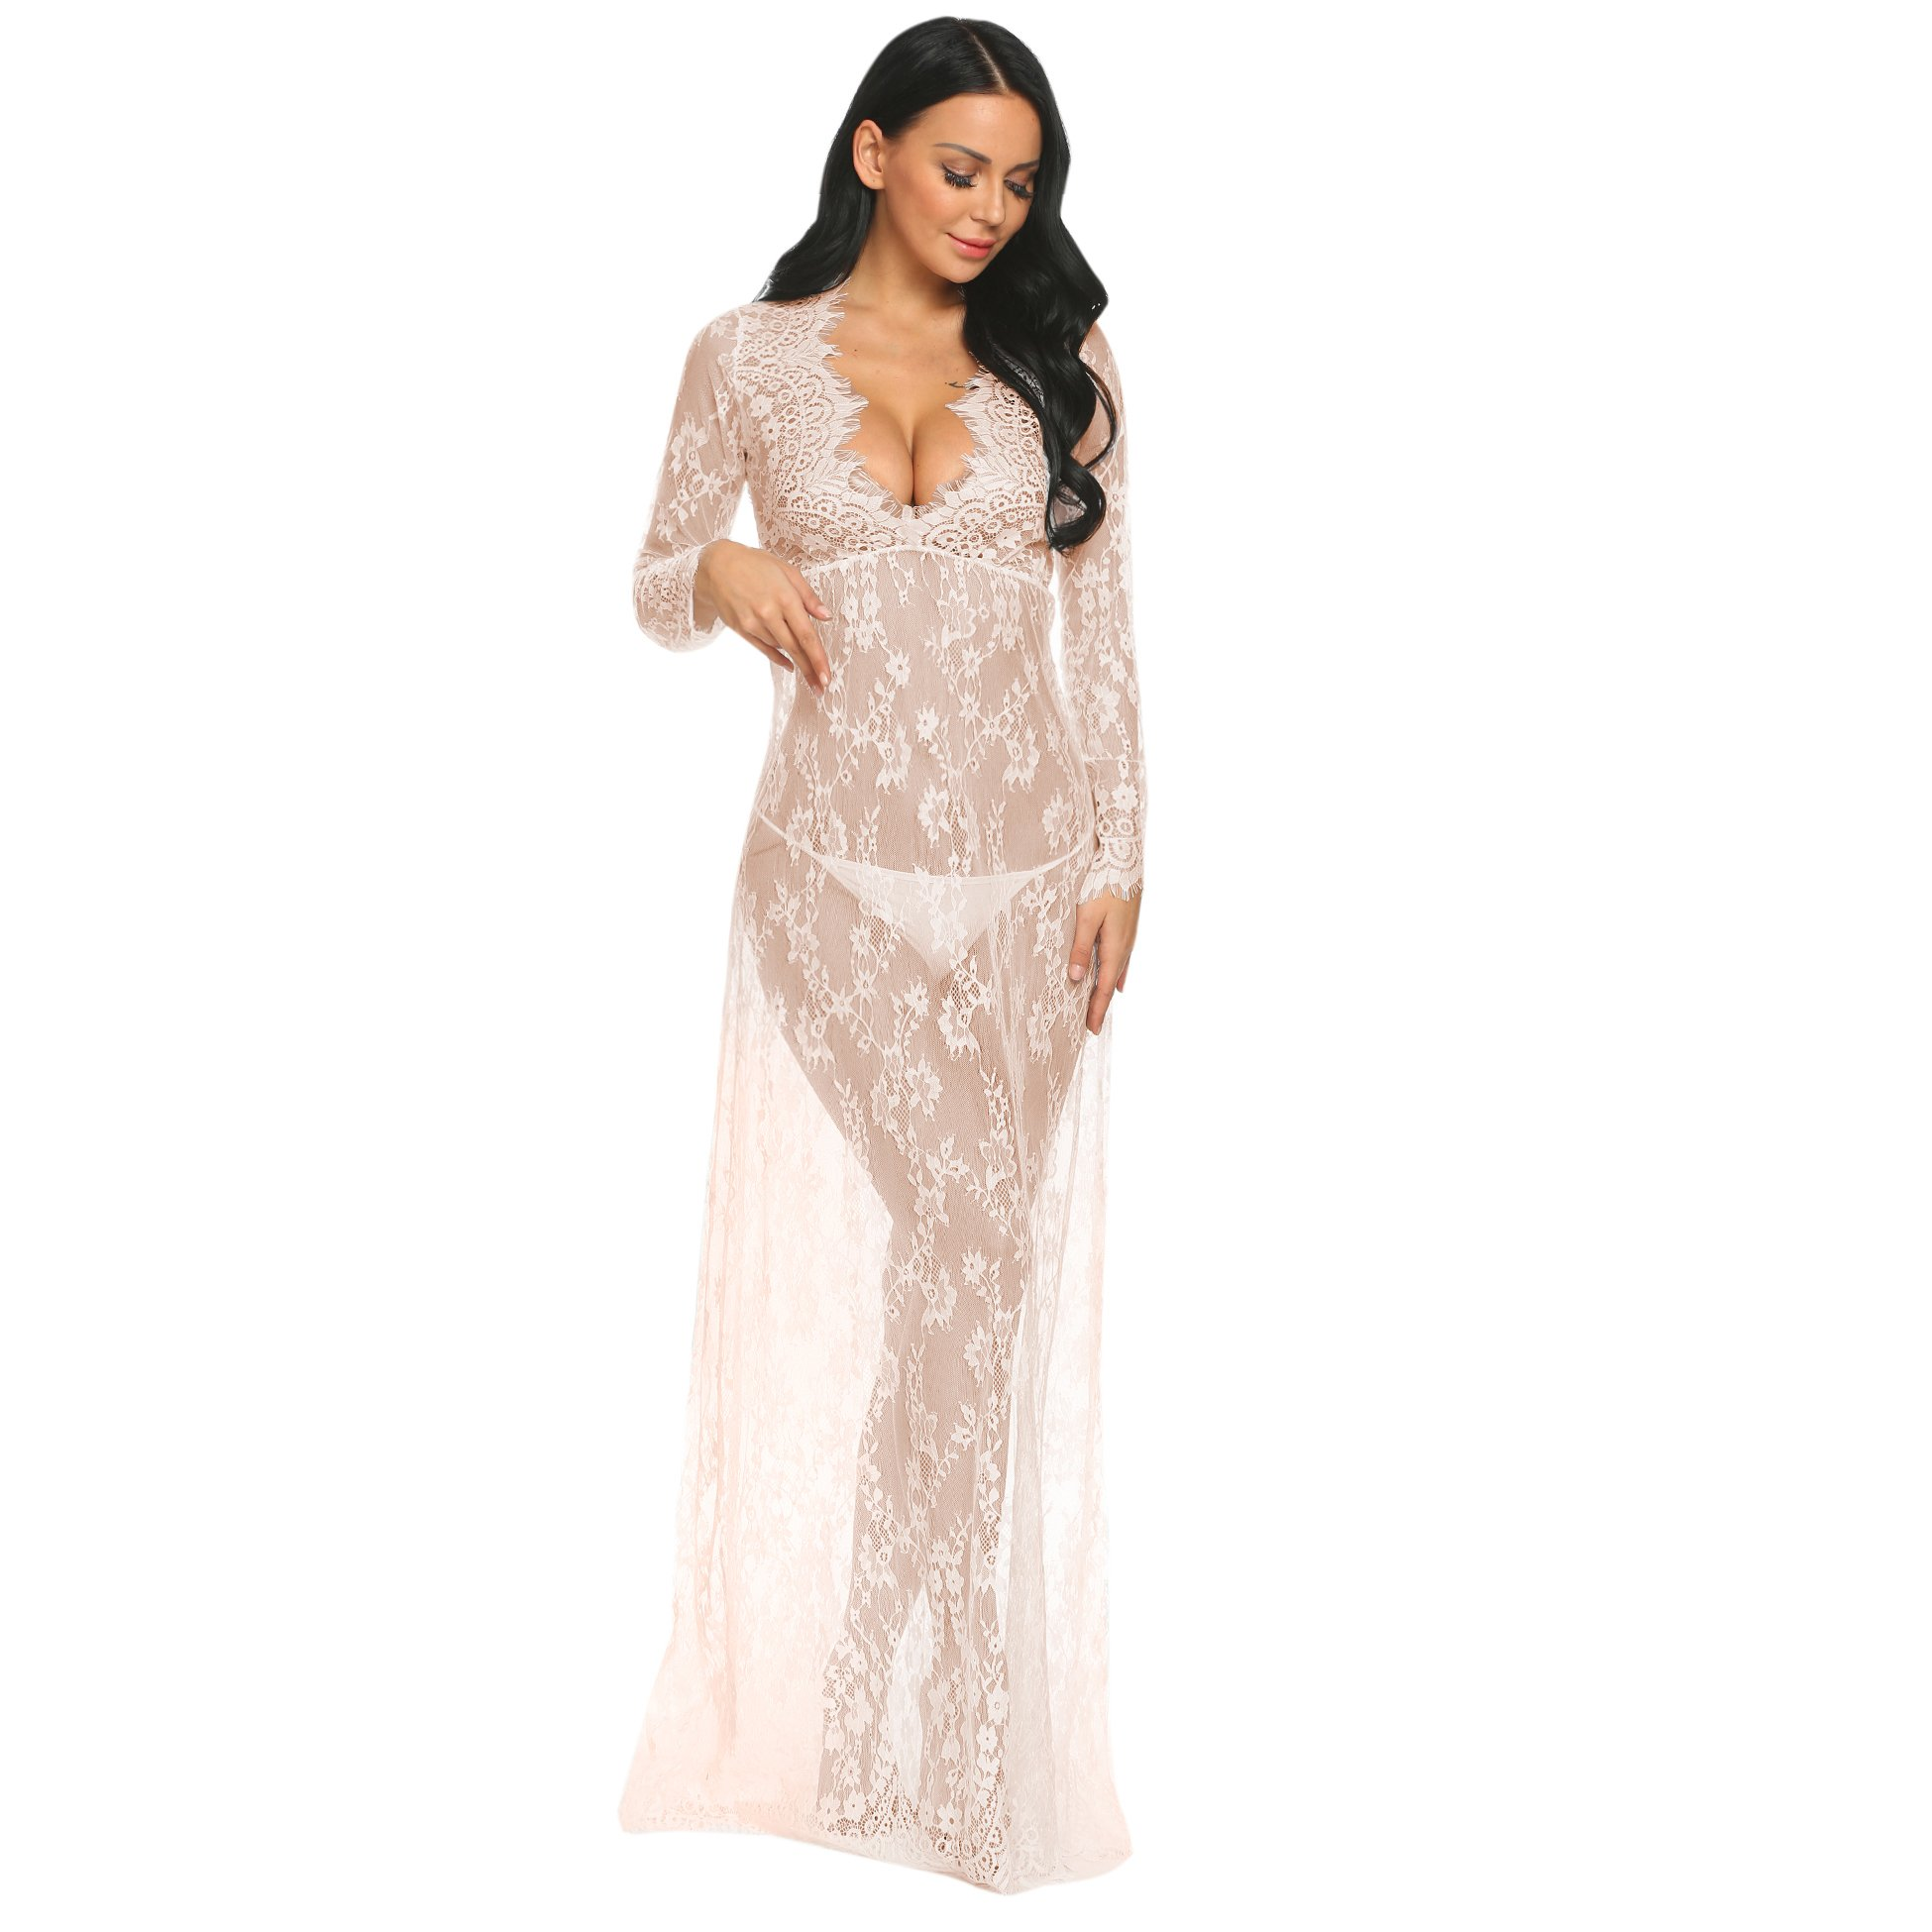 COSYOU Maternity Dress Sexy Off Shoulder Gown Dress for Women (2XL, Beige)